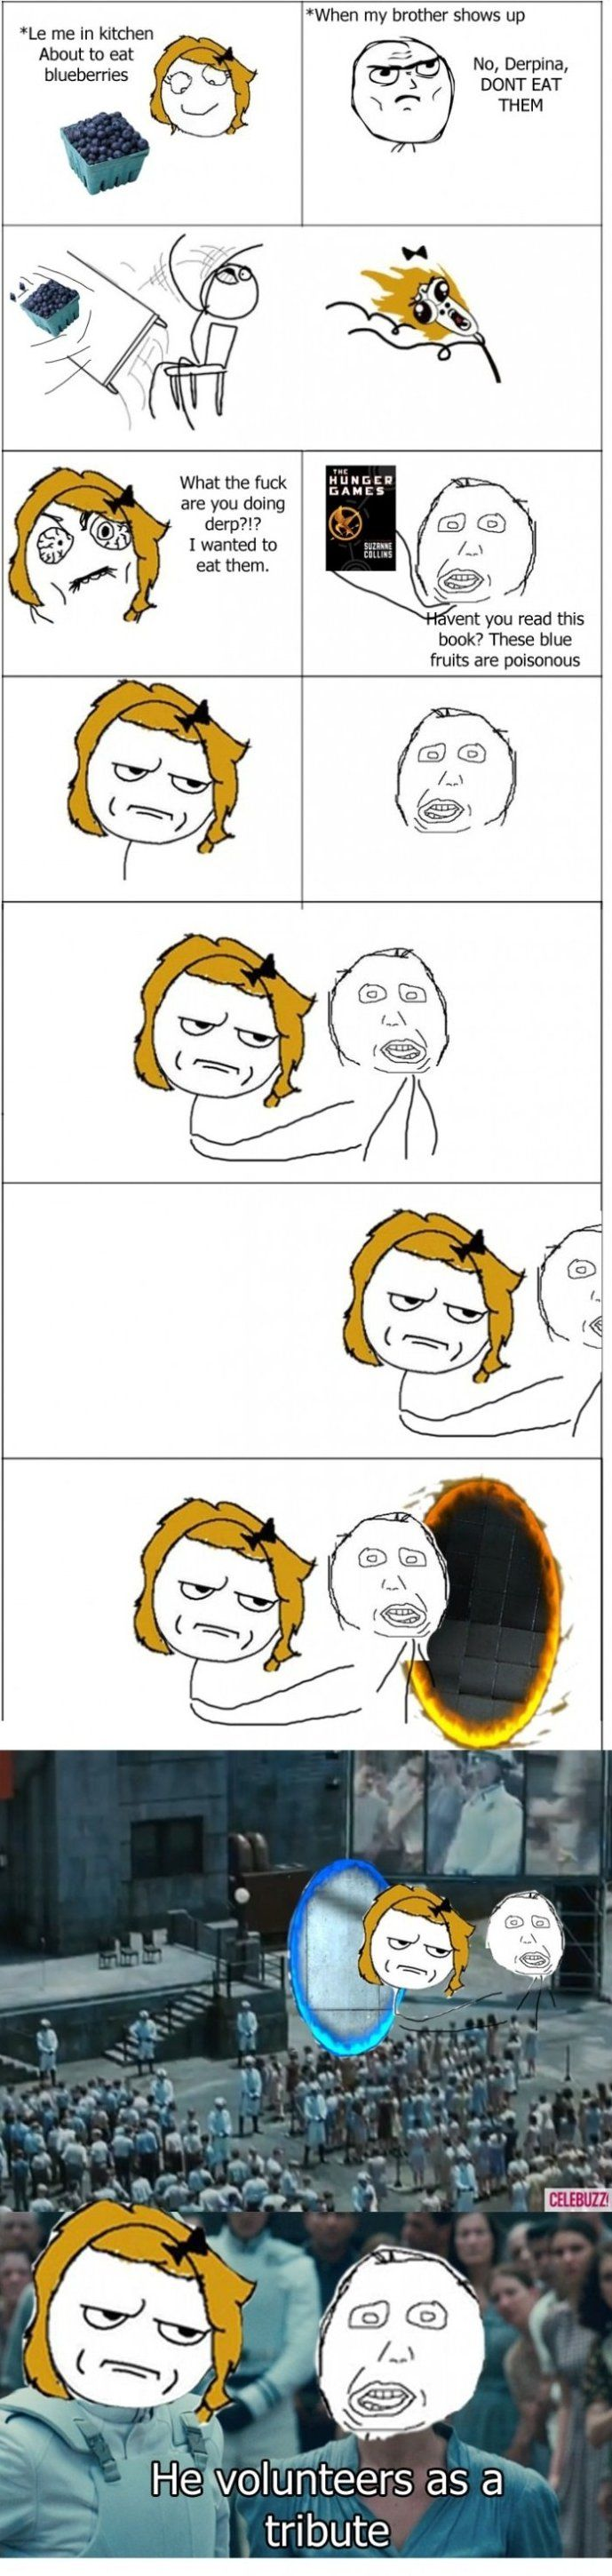 The Hunger Games Comic haha ( sorry for the cuss word)